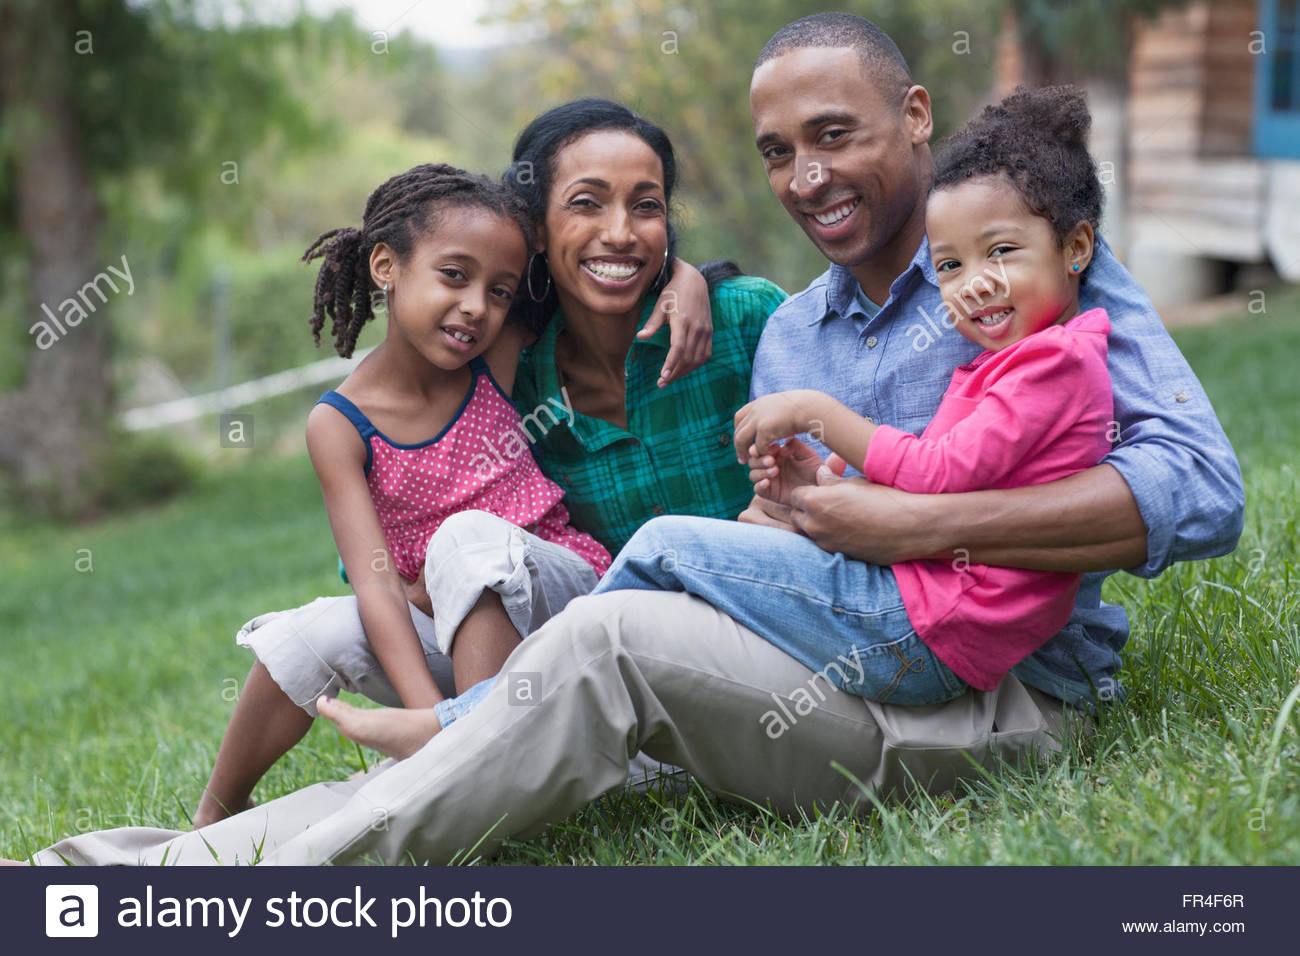 portrait of african american family of four - Stock Image